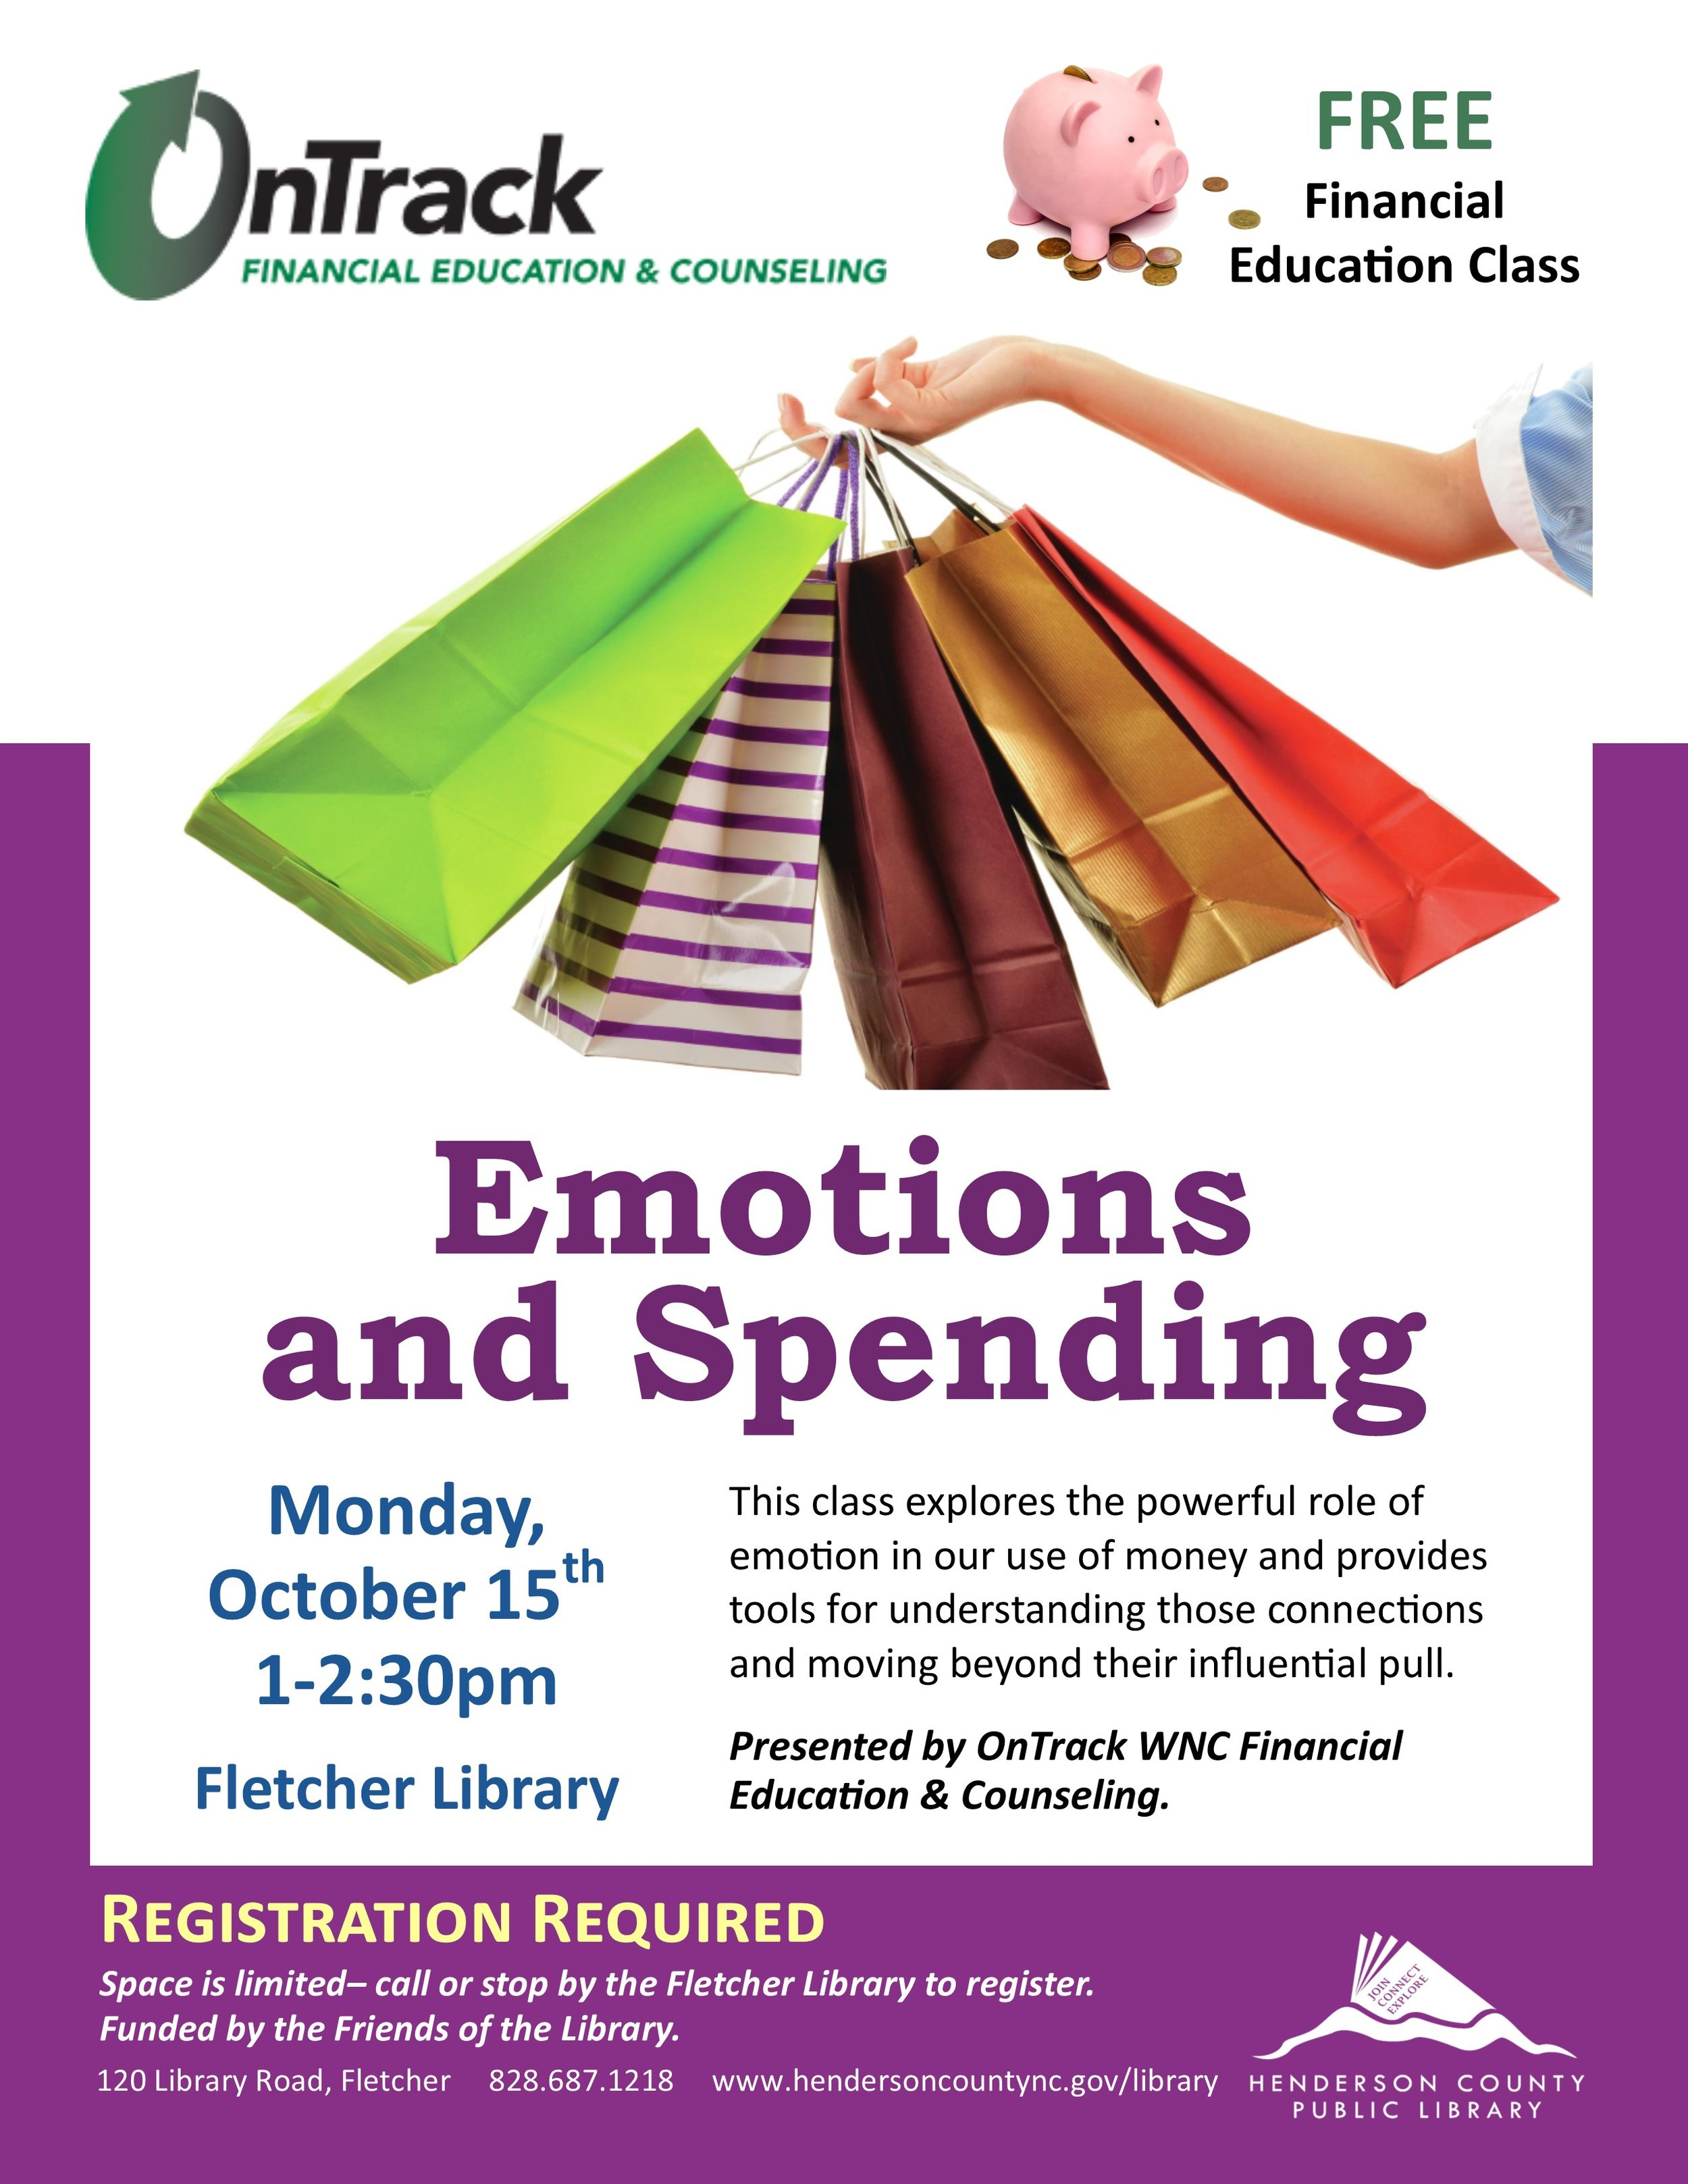 FL- Emotions and Spending by OnTrack.jpg